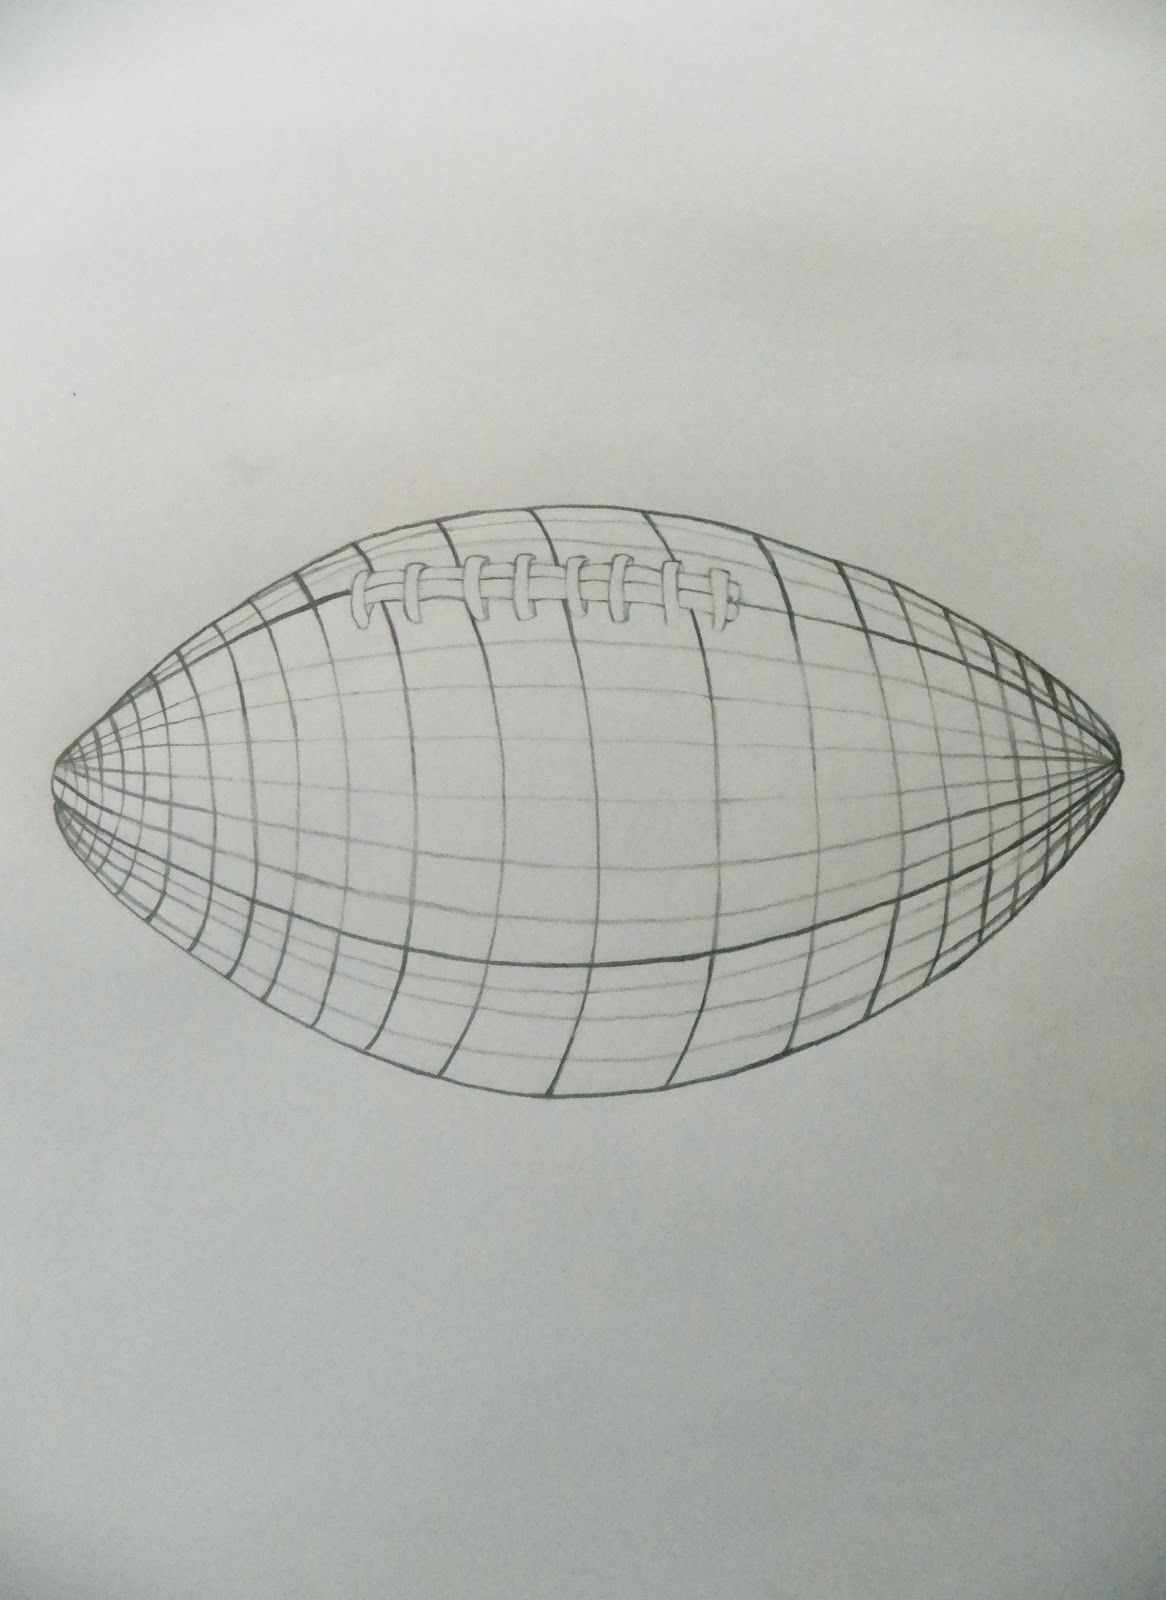 Football Contour Drawing